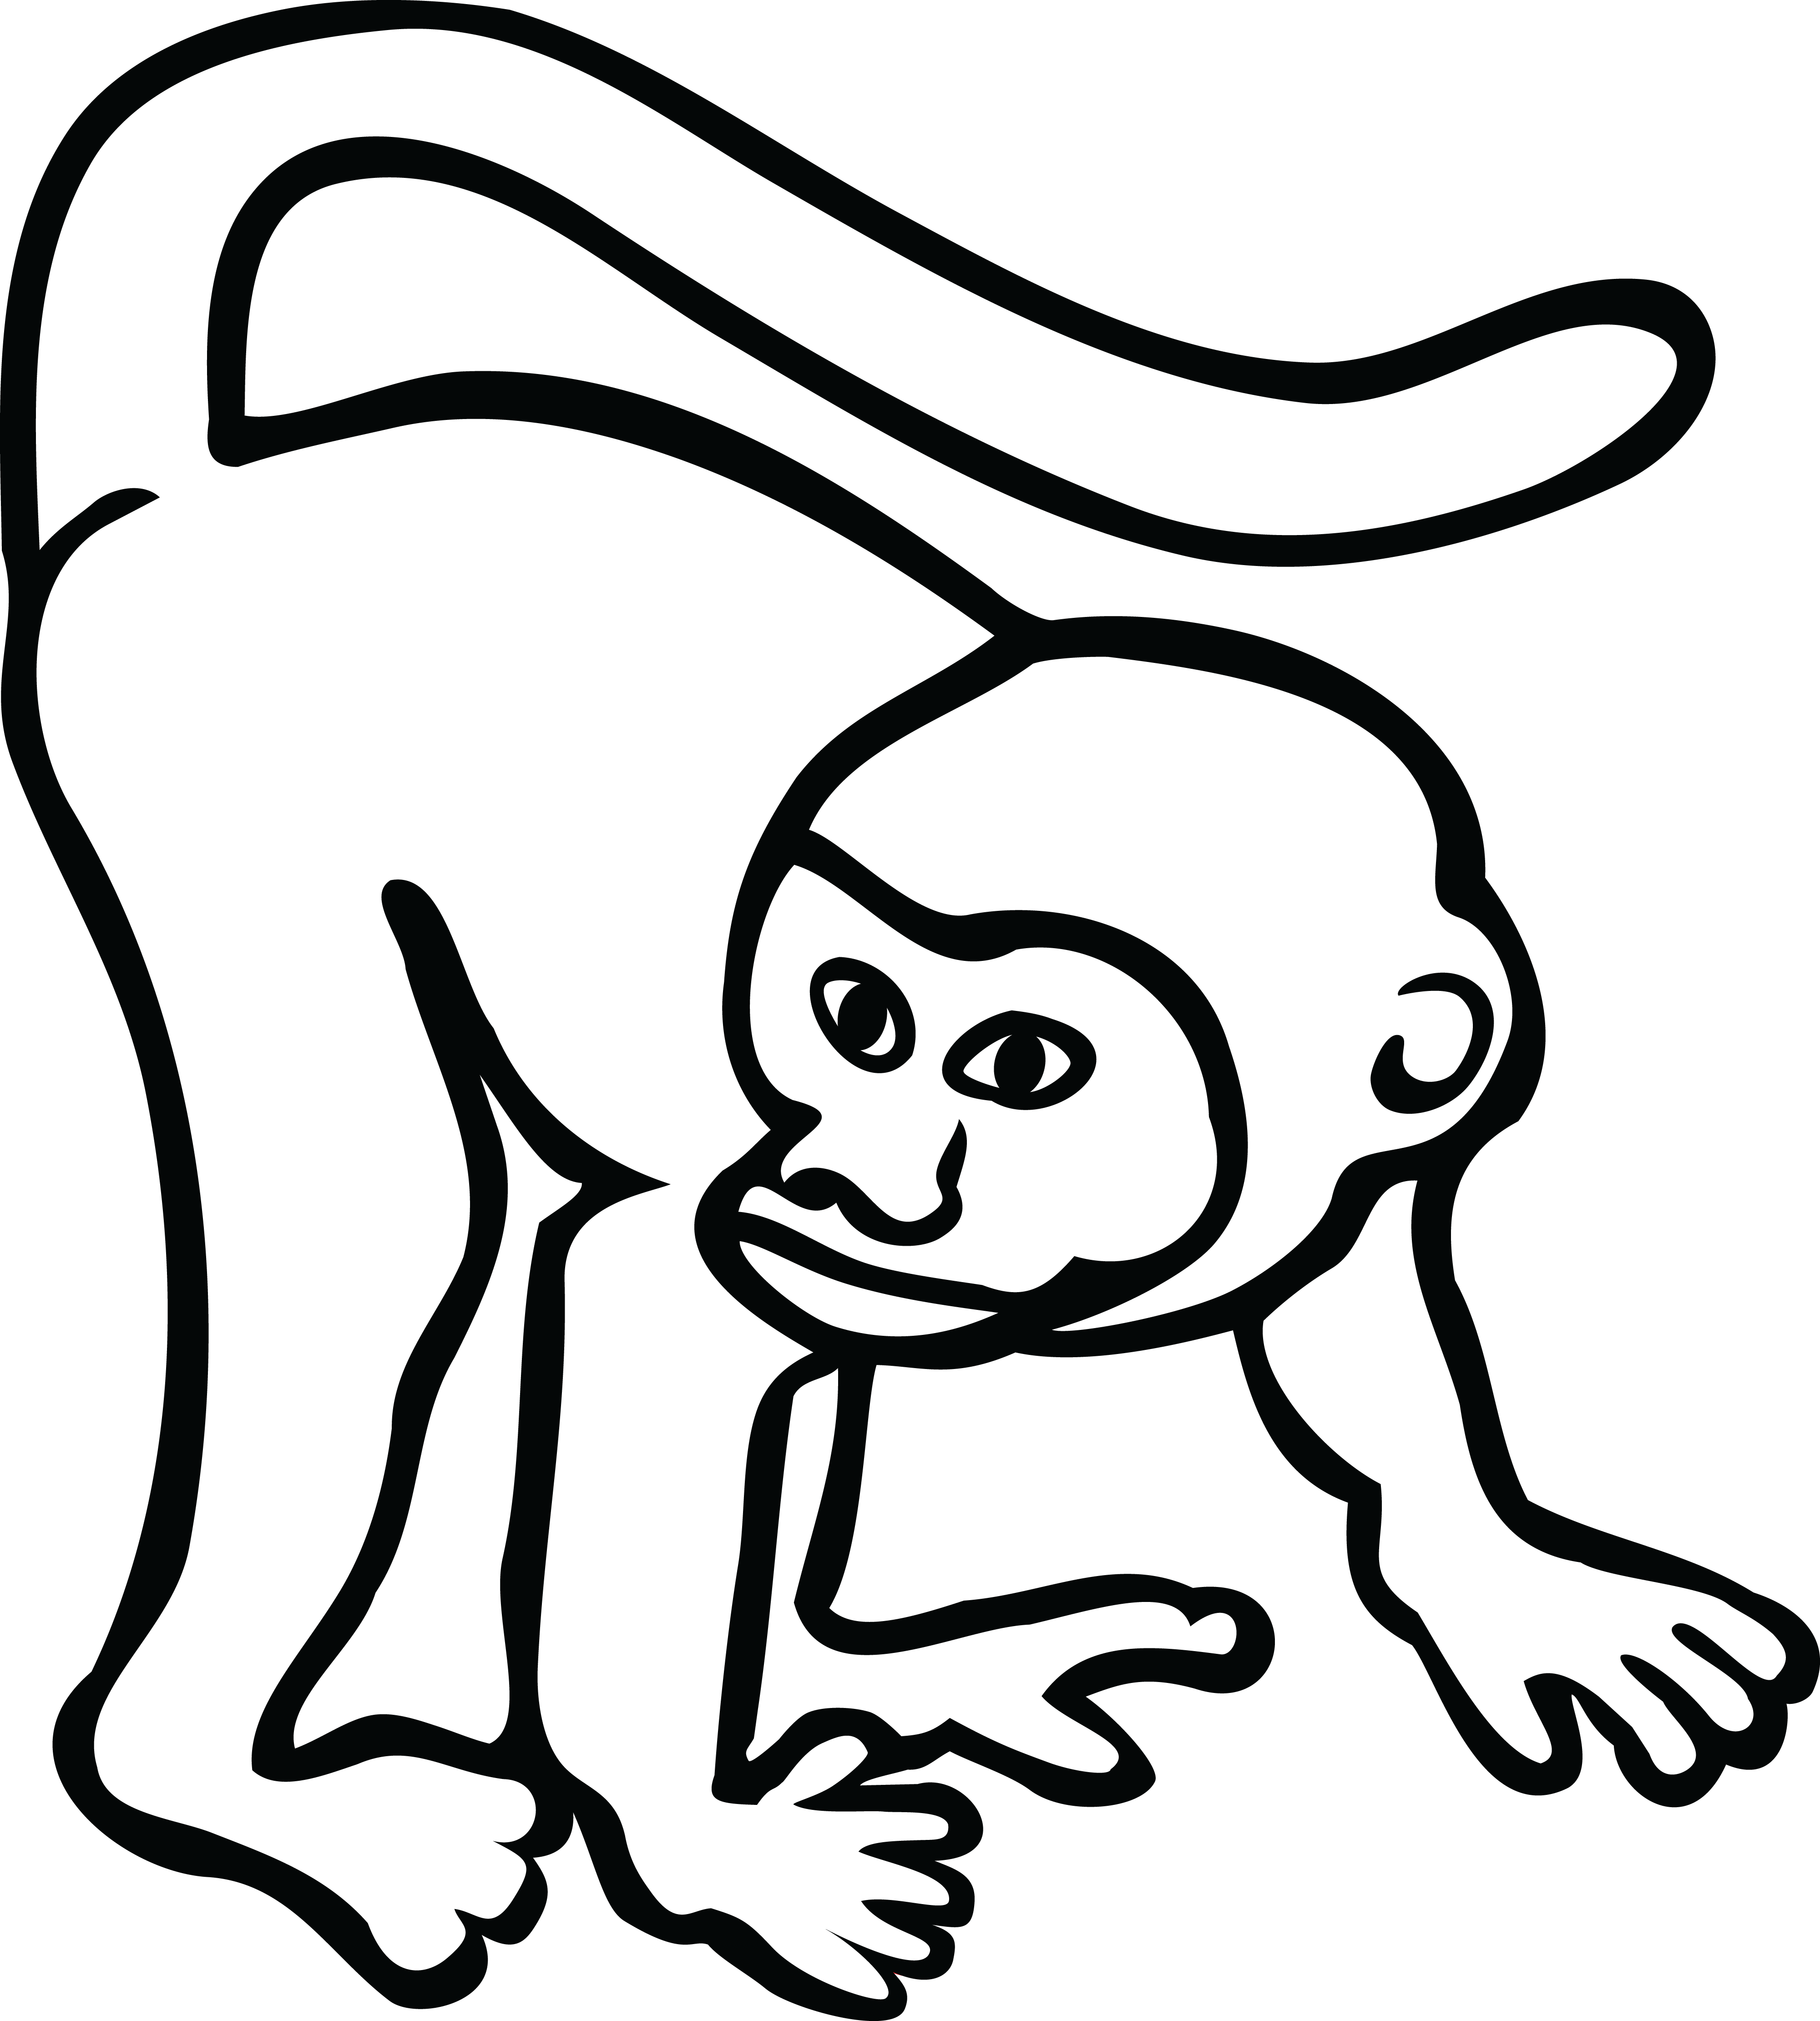 Free Clipart Of A Monkey 00011490